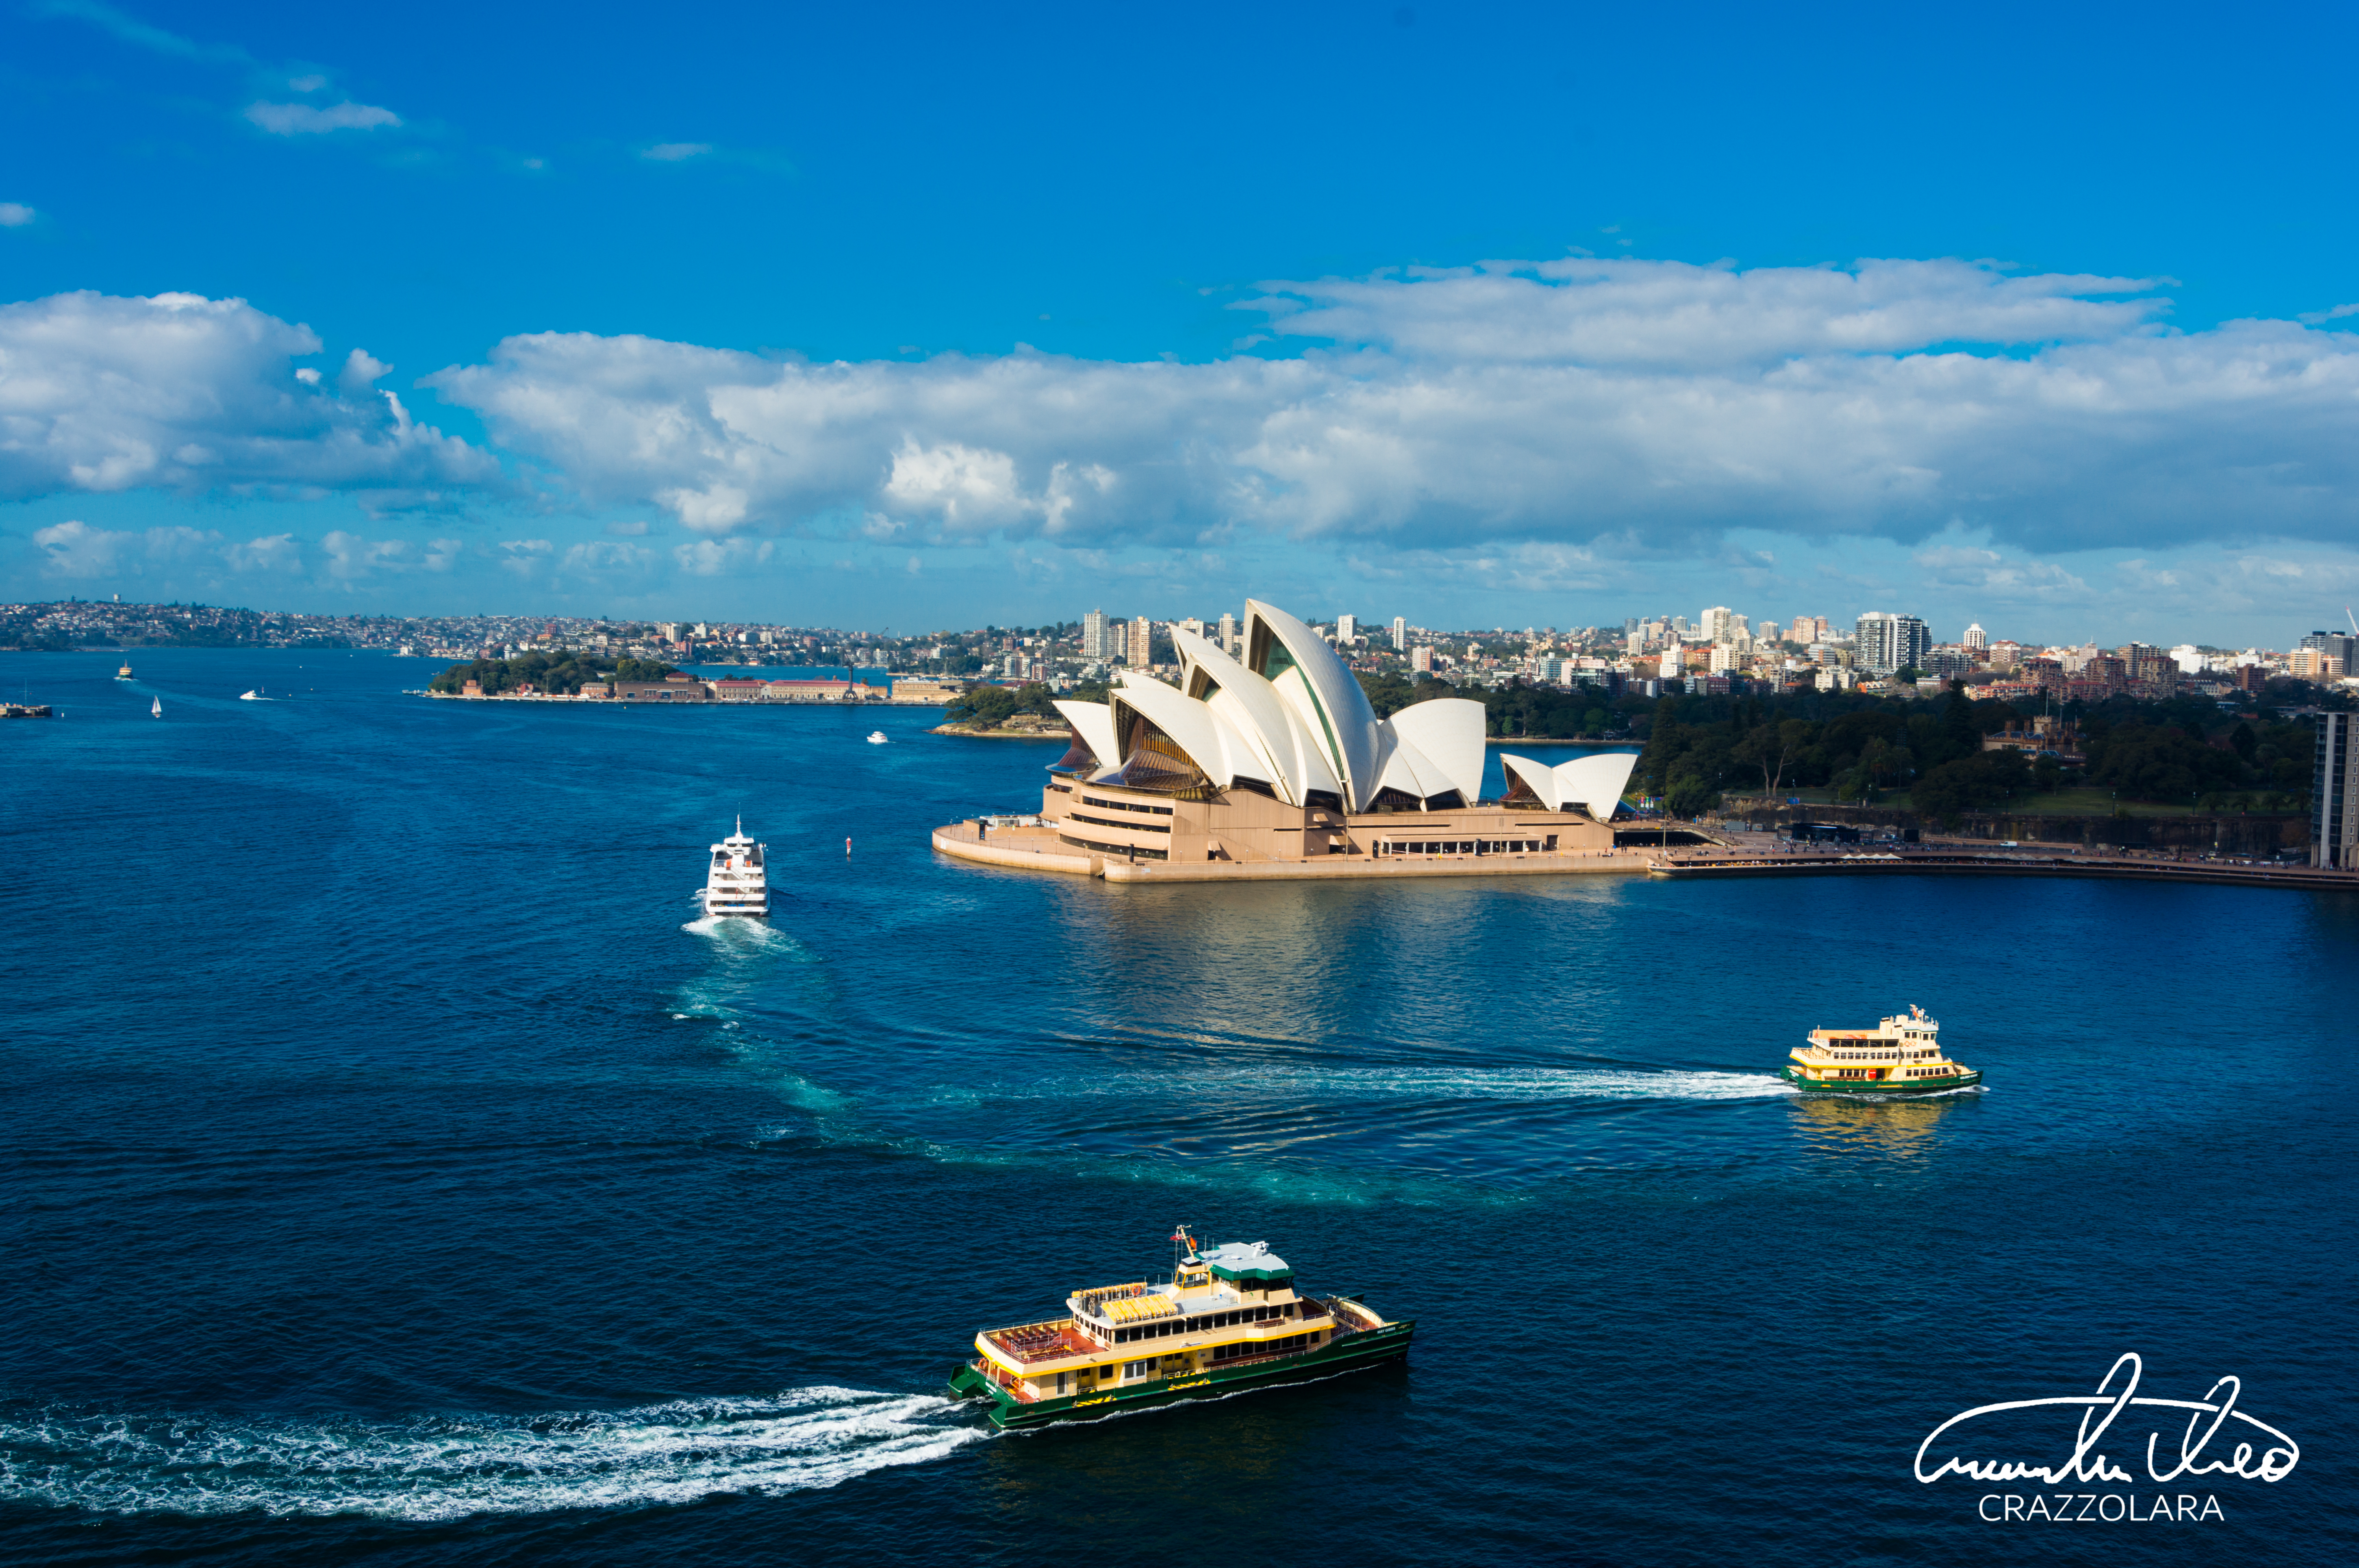 105262 download wallpaper Sydney Opera House, Theatre, Harbor, Ships, Sydney, Australia, Cities screensavers and pictures for free